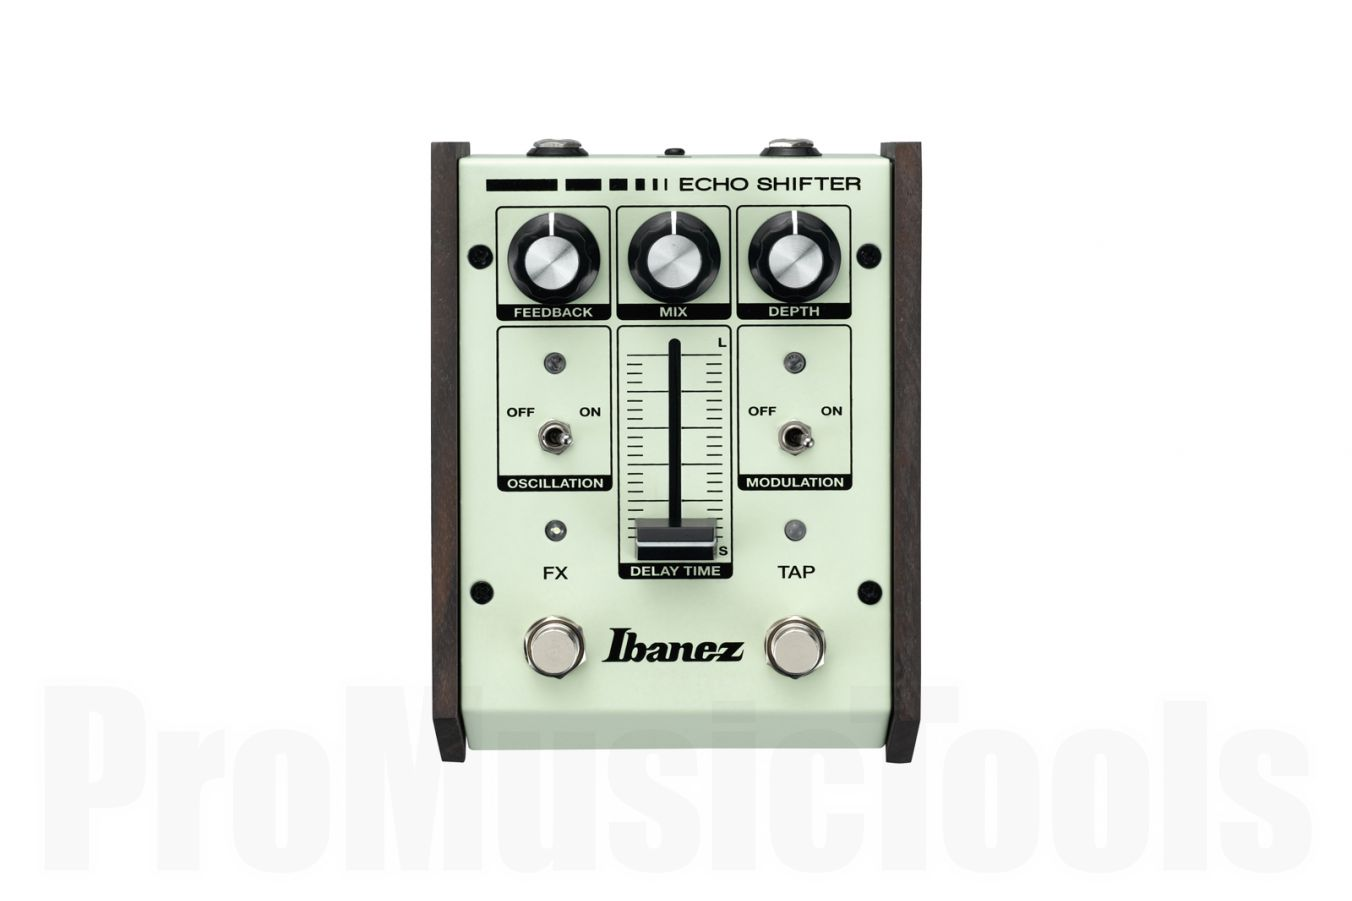 Ibanez ES2 Echo Shifter Analog Delay - b-stock (1x opened box)